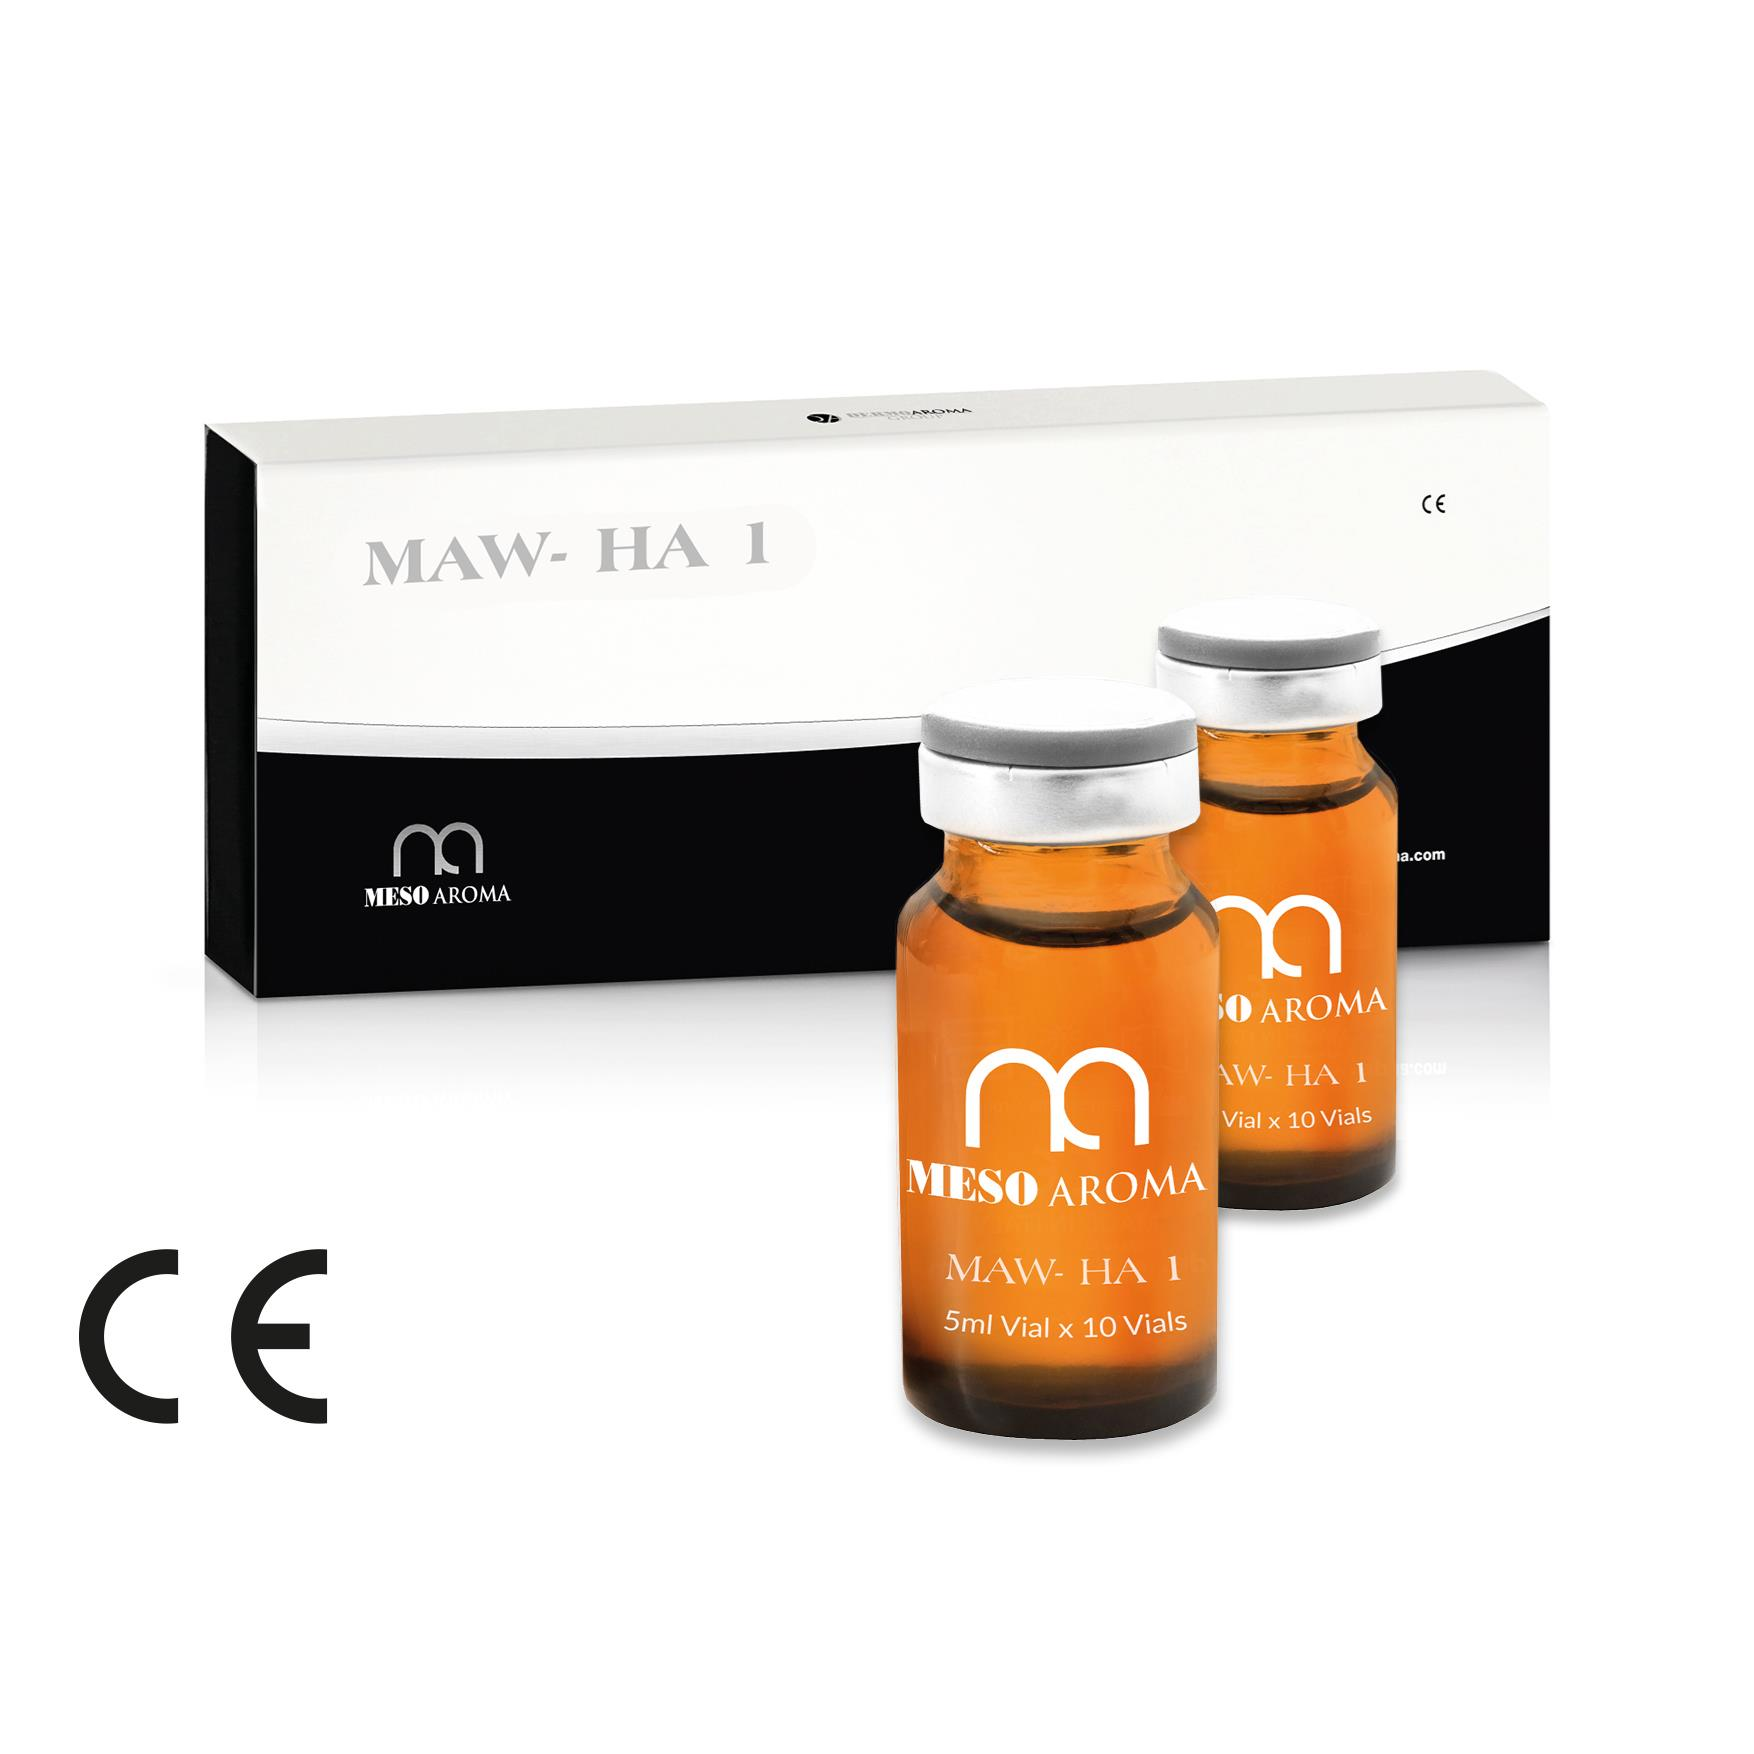 ampulka-do-mezoterapii-mesoaroma-HA1-kwas hialuronowy-1_-5ml